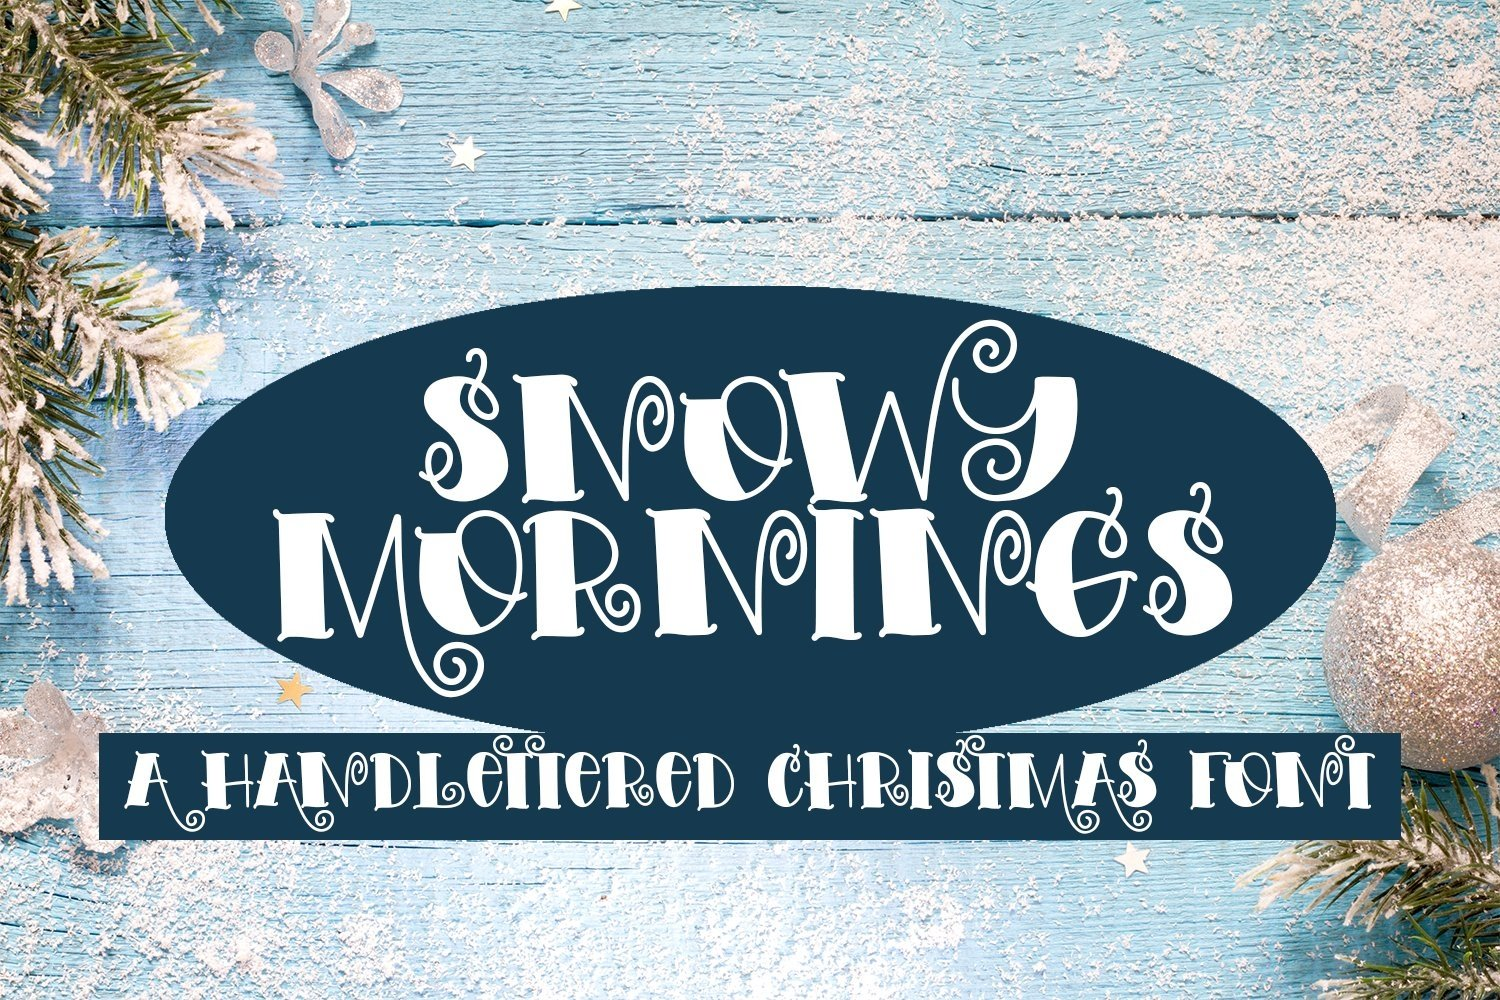 Web Font Snowy Mornings - A Hand-Lettered Christmas Font example image 1